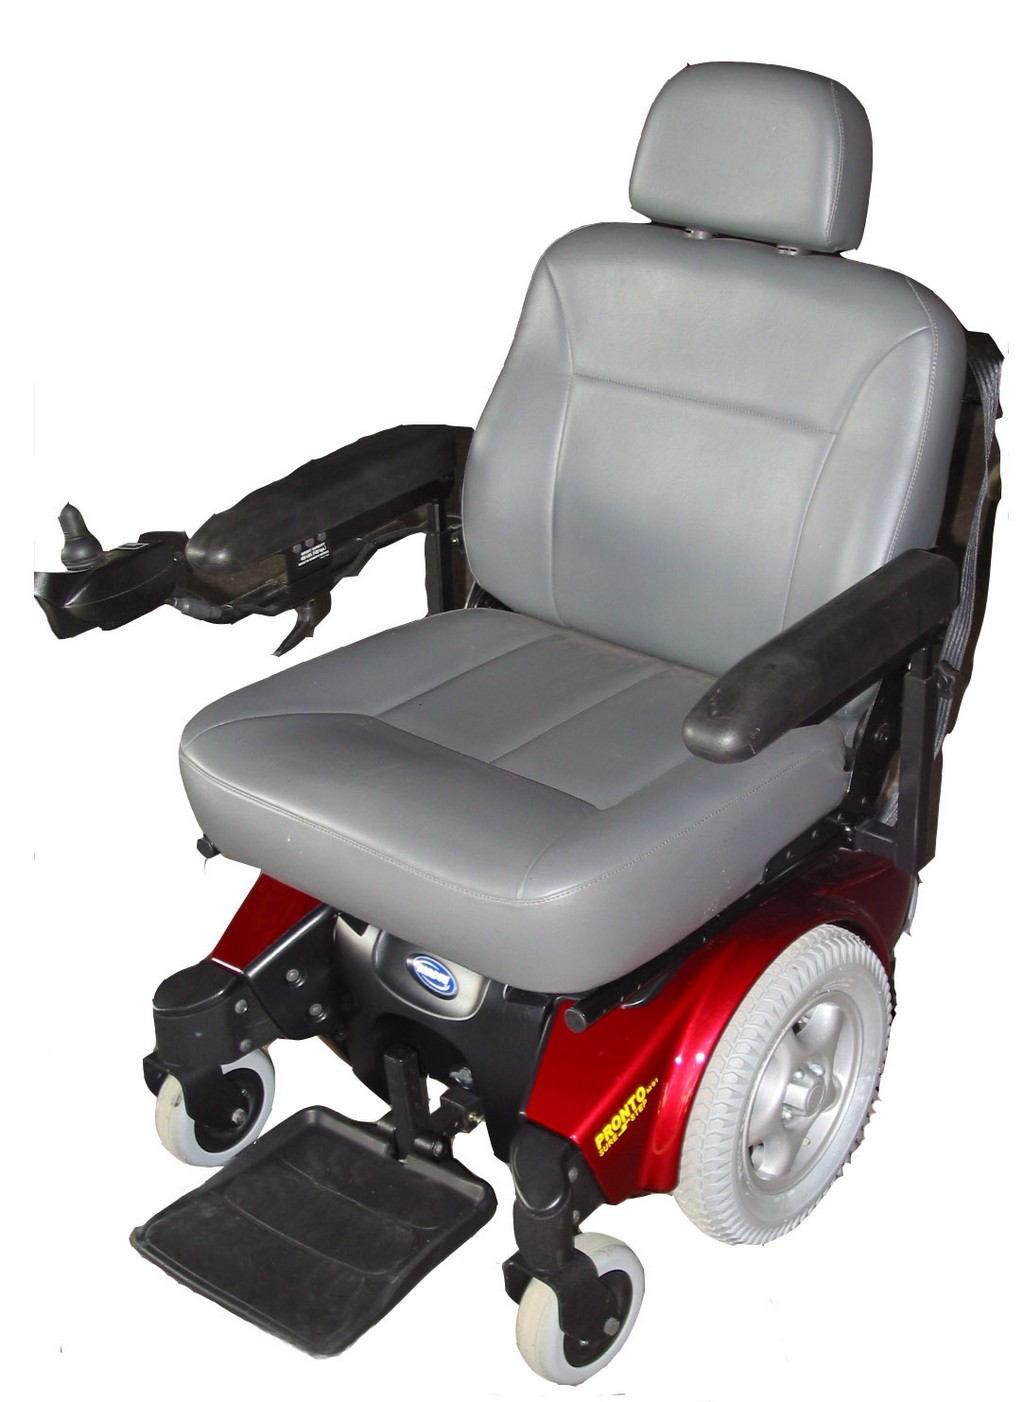 power wheel chair repair in nc, dalton rear wheel power chair, pimed out power wheelchair, power wheelchairs of america